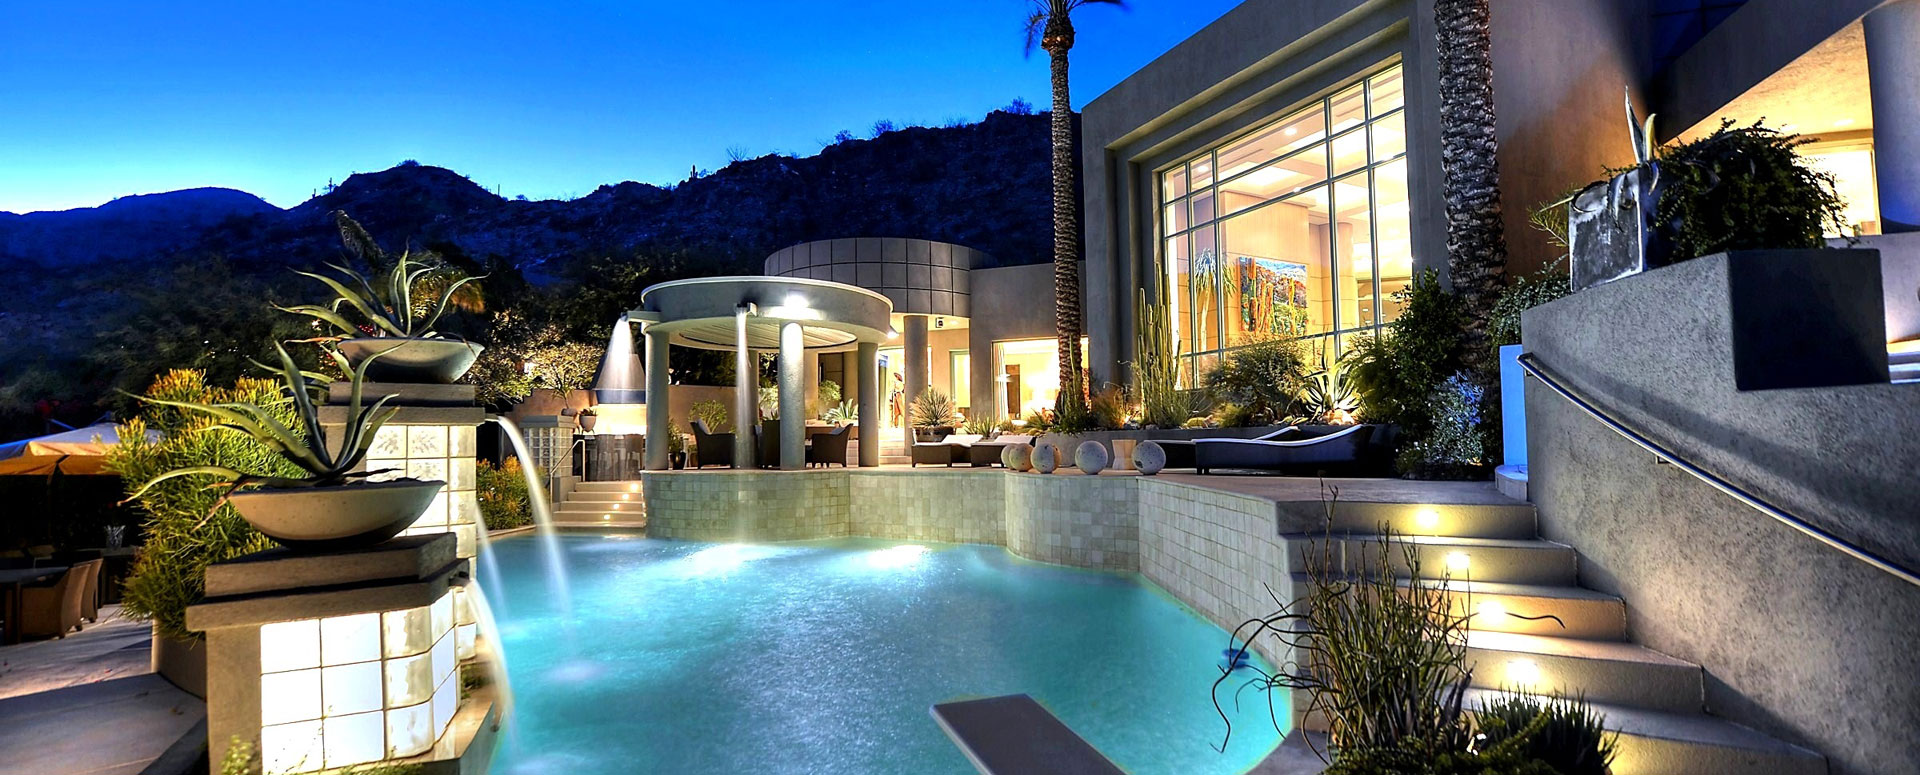 Pool_Featured